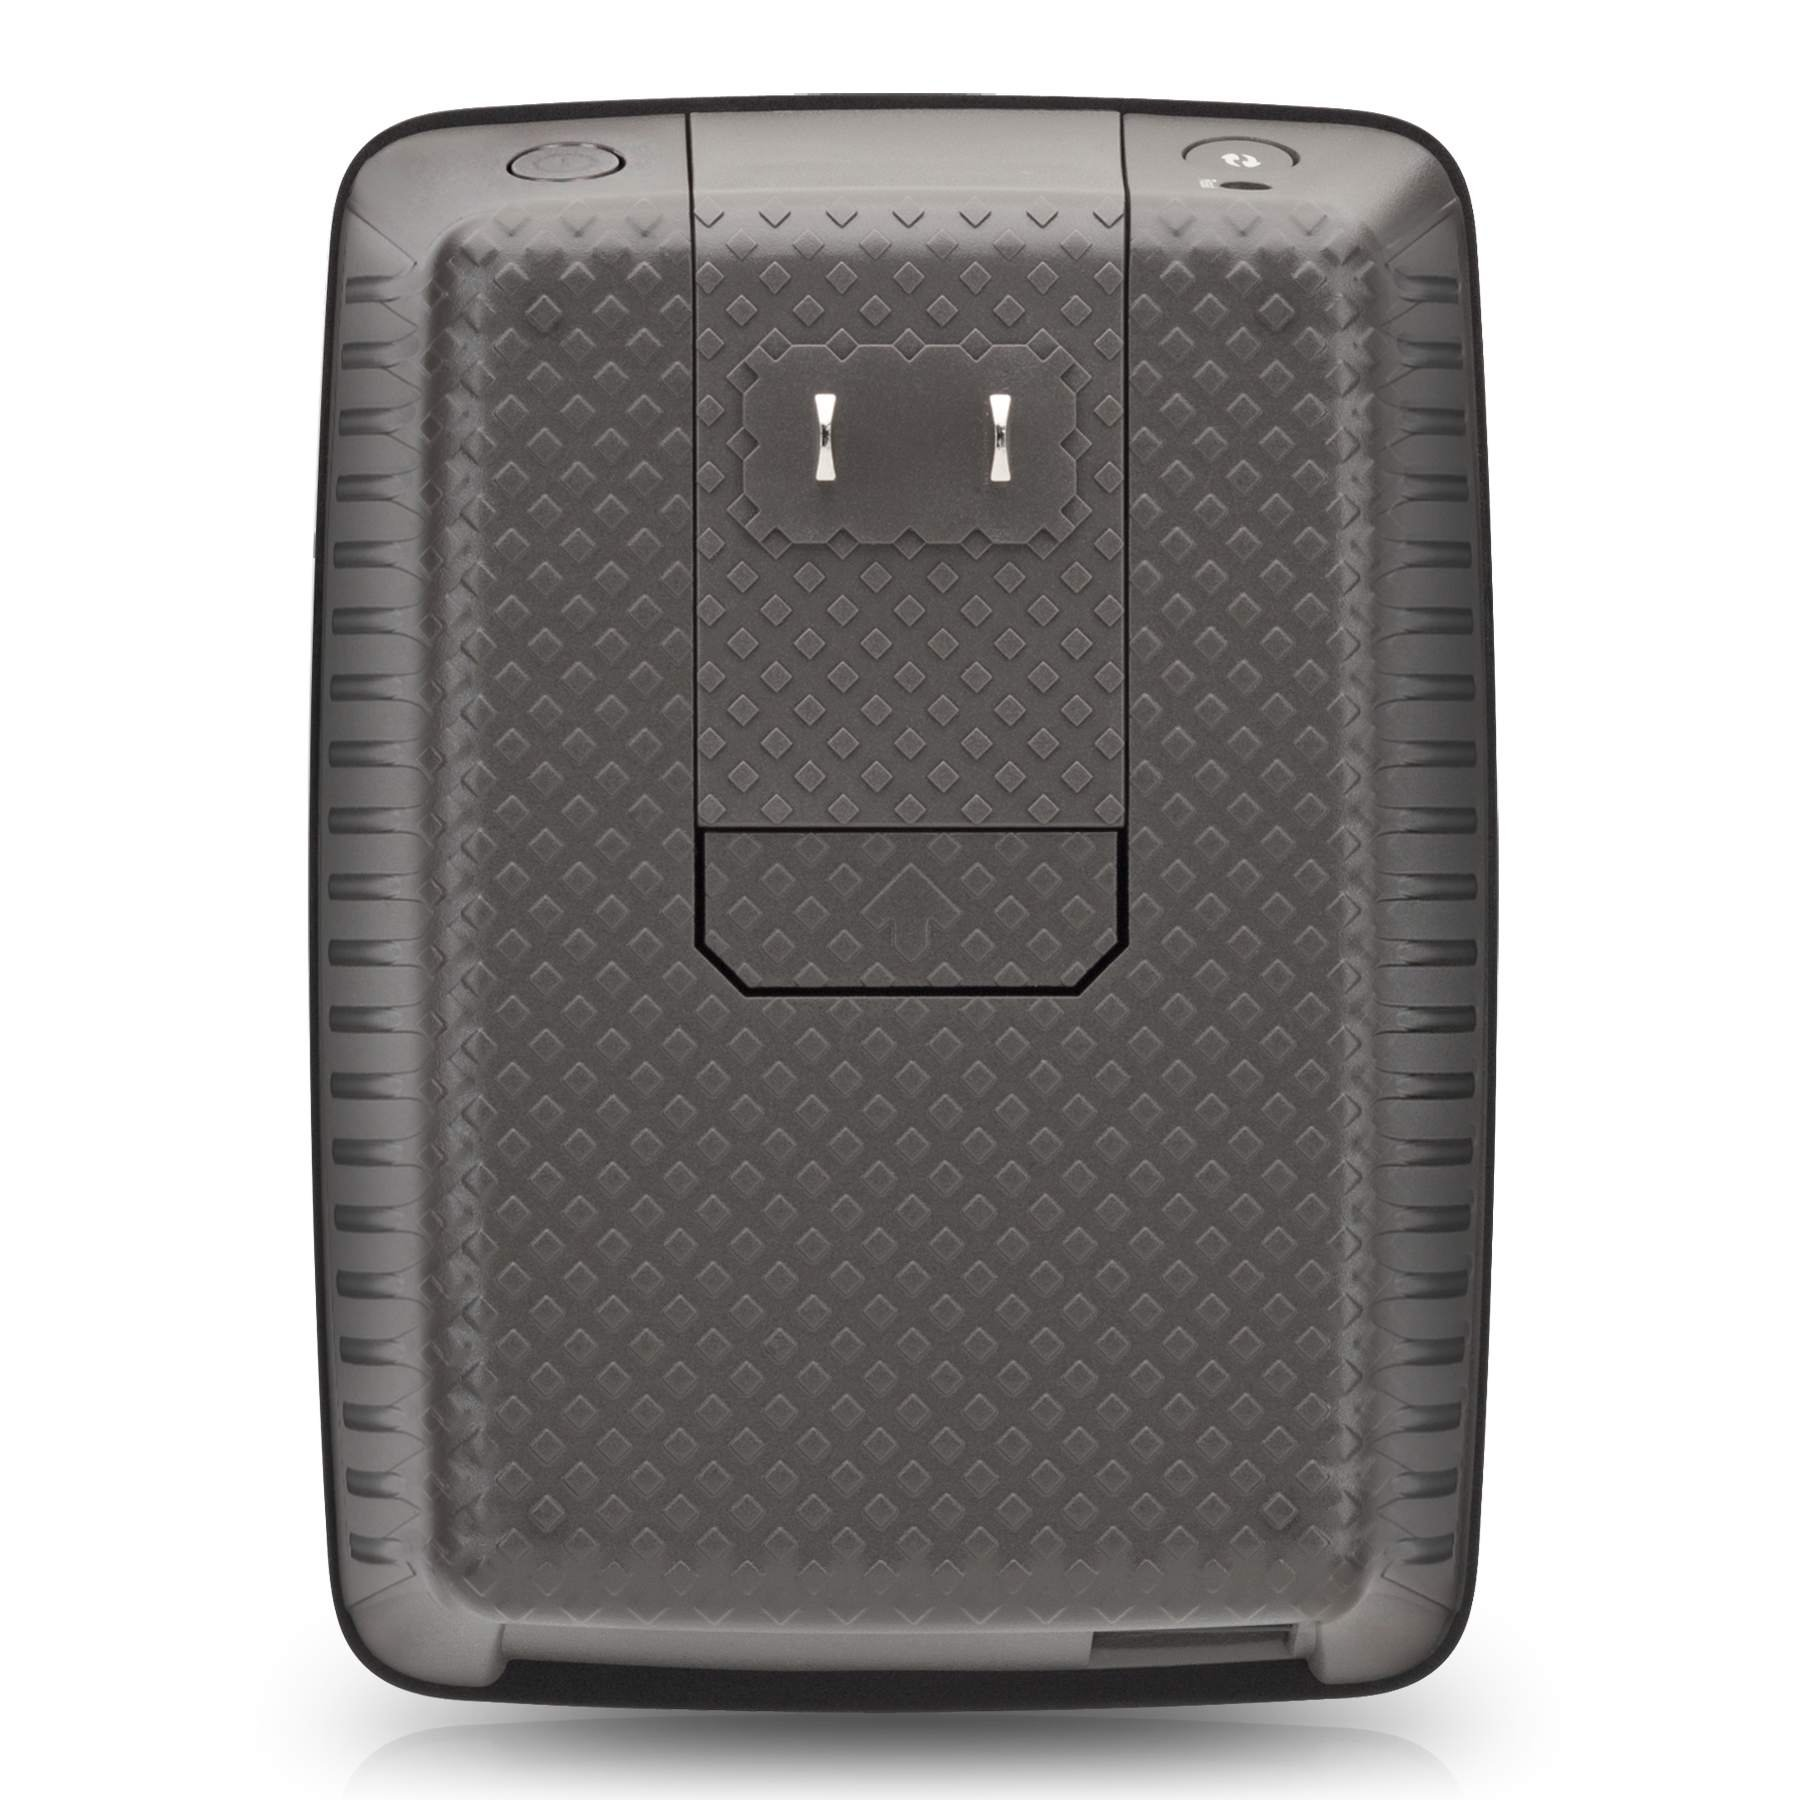 Linksys N300 Wireless Dual-Band Range Extender (RE1000) by Linksys (Image #5)